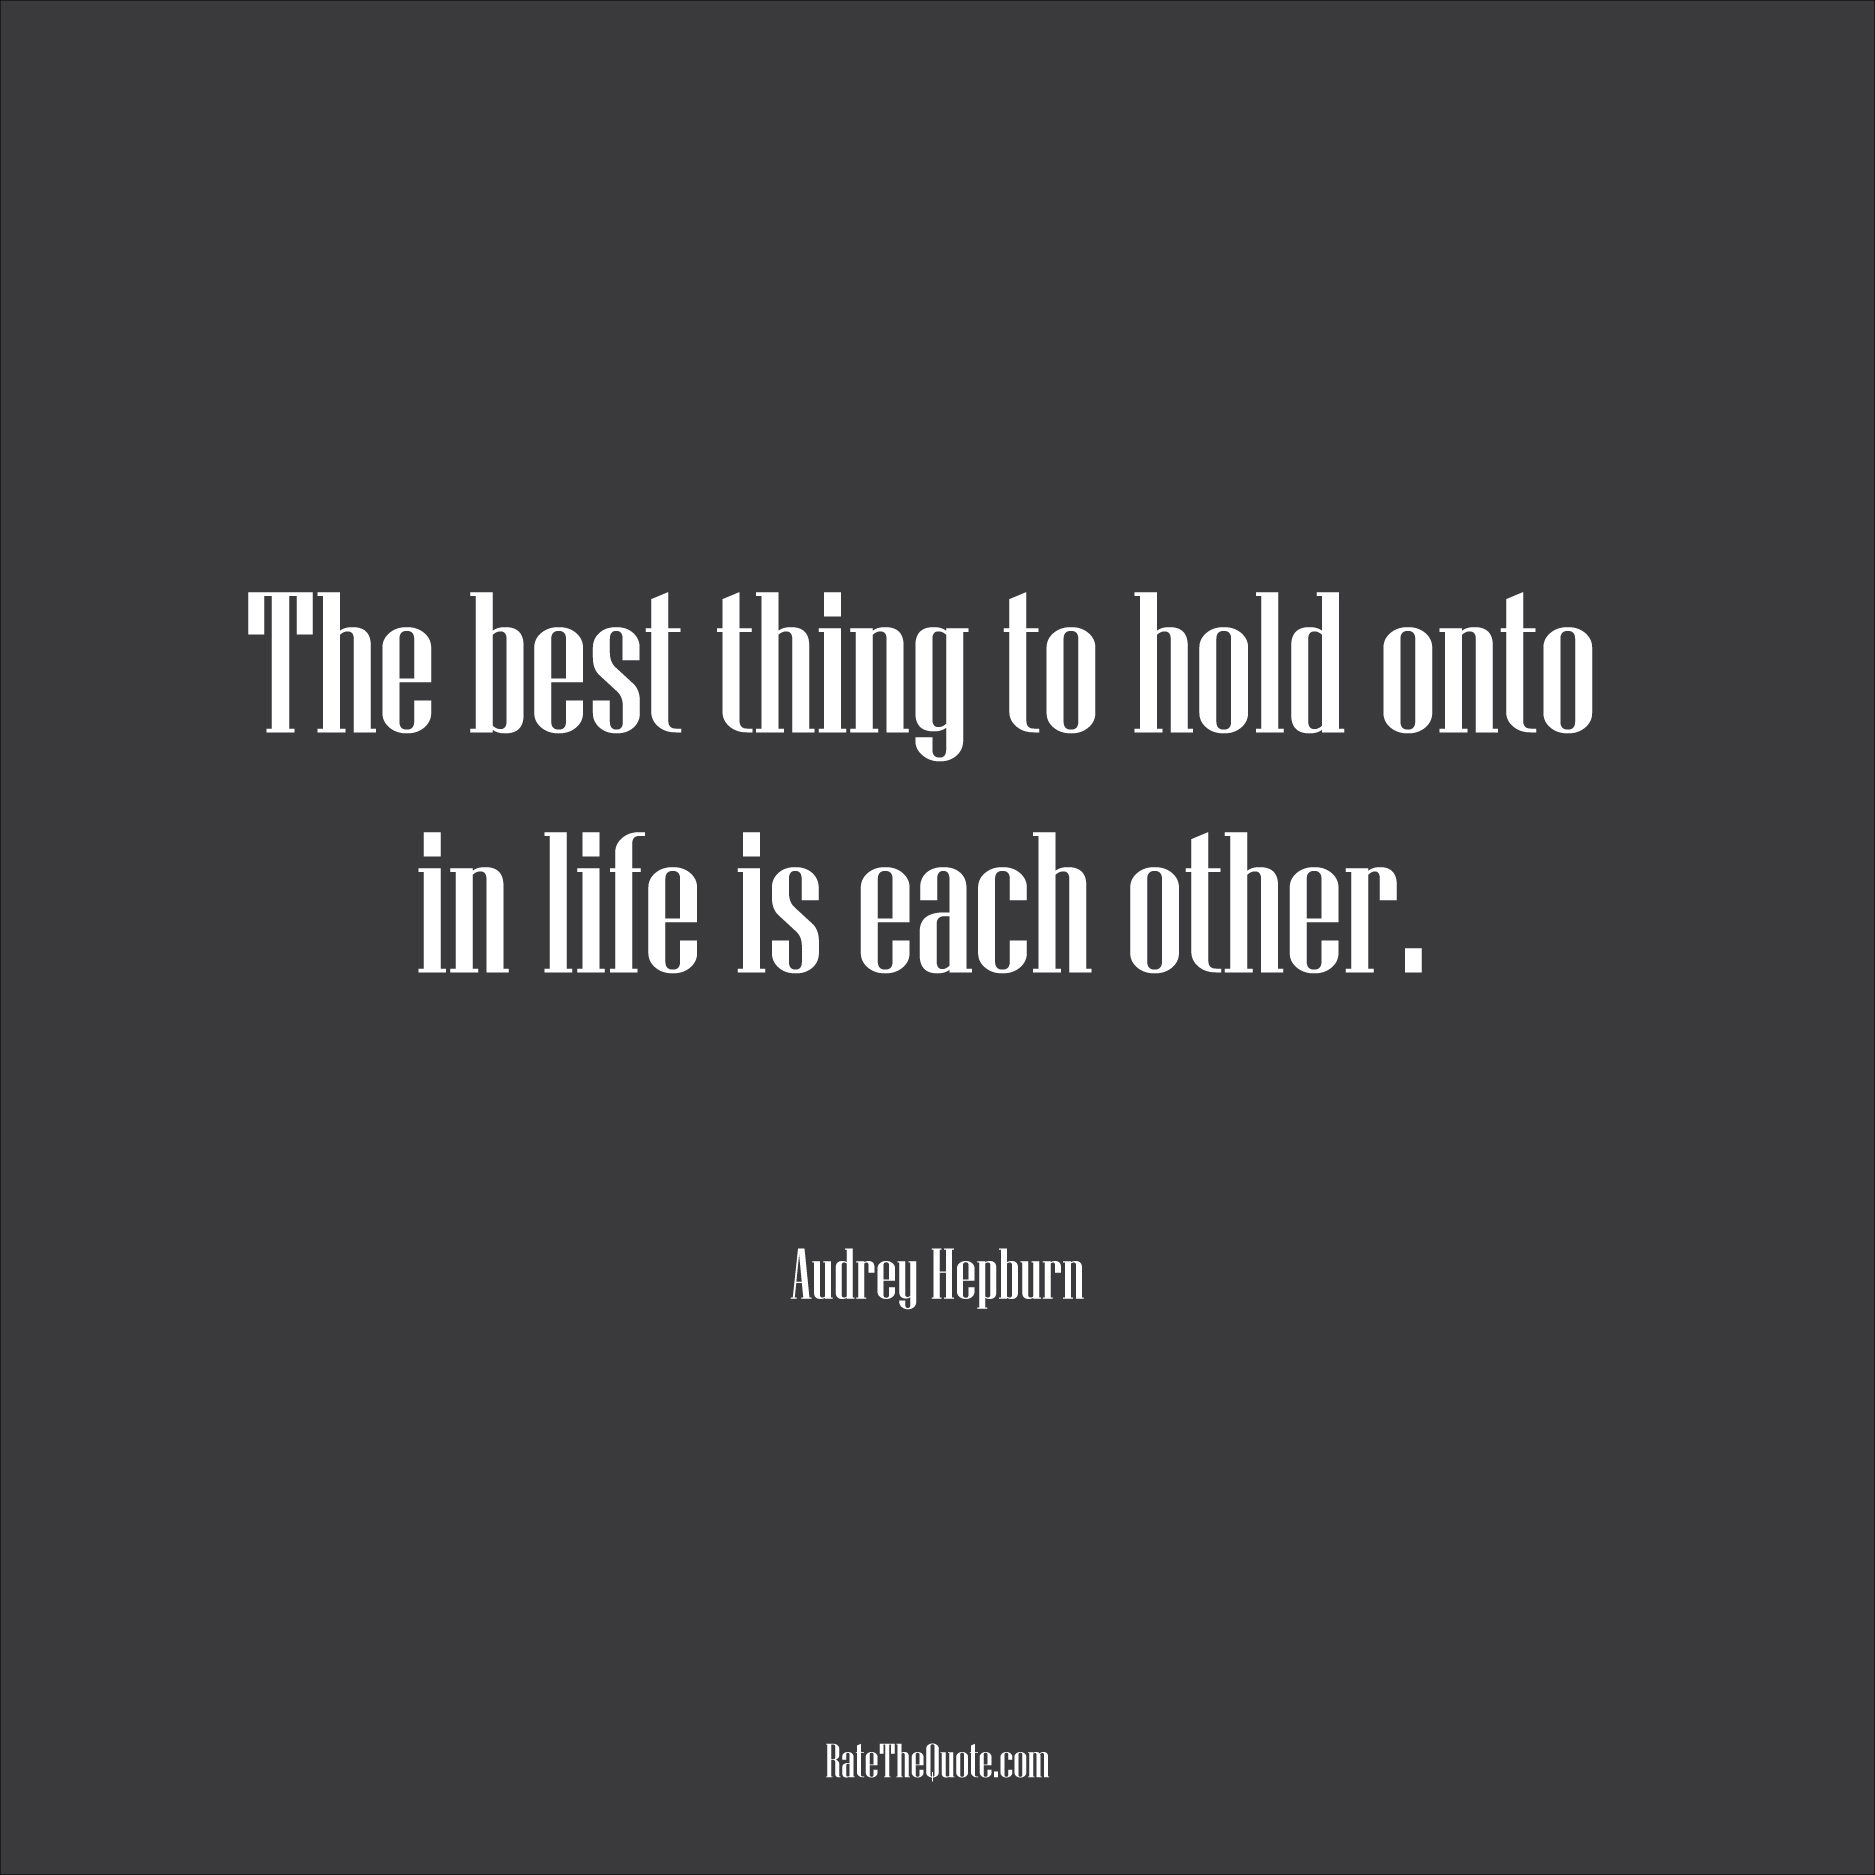 Love Quotes The best thing to hold onto in life is each other. Audrey Hepburn